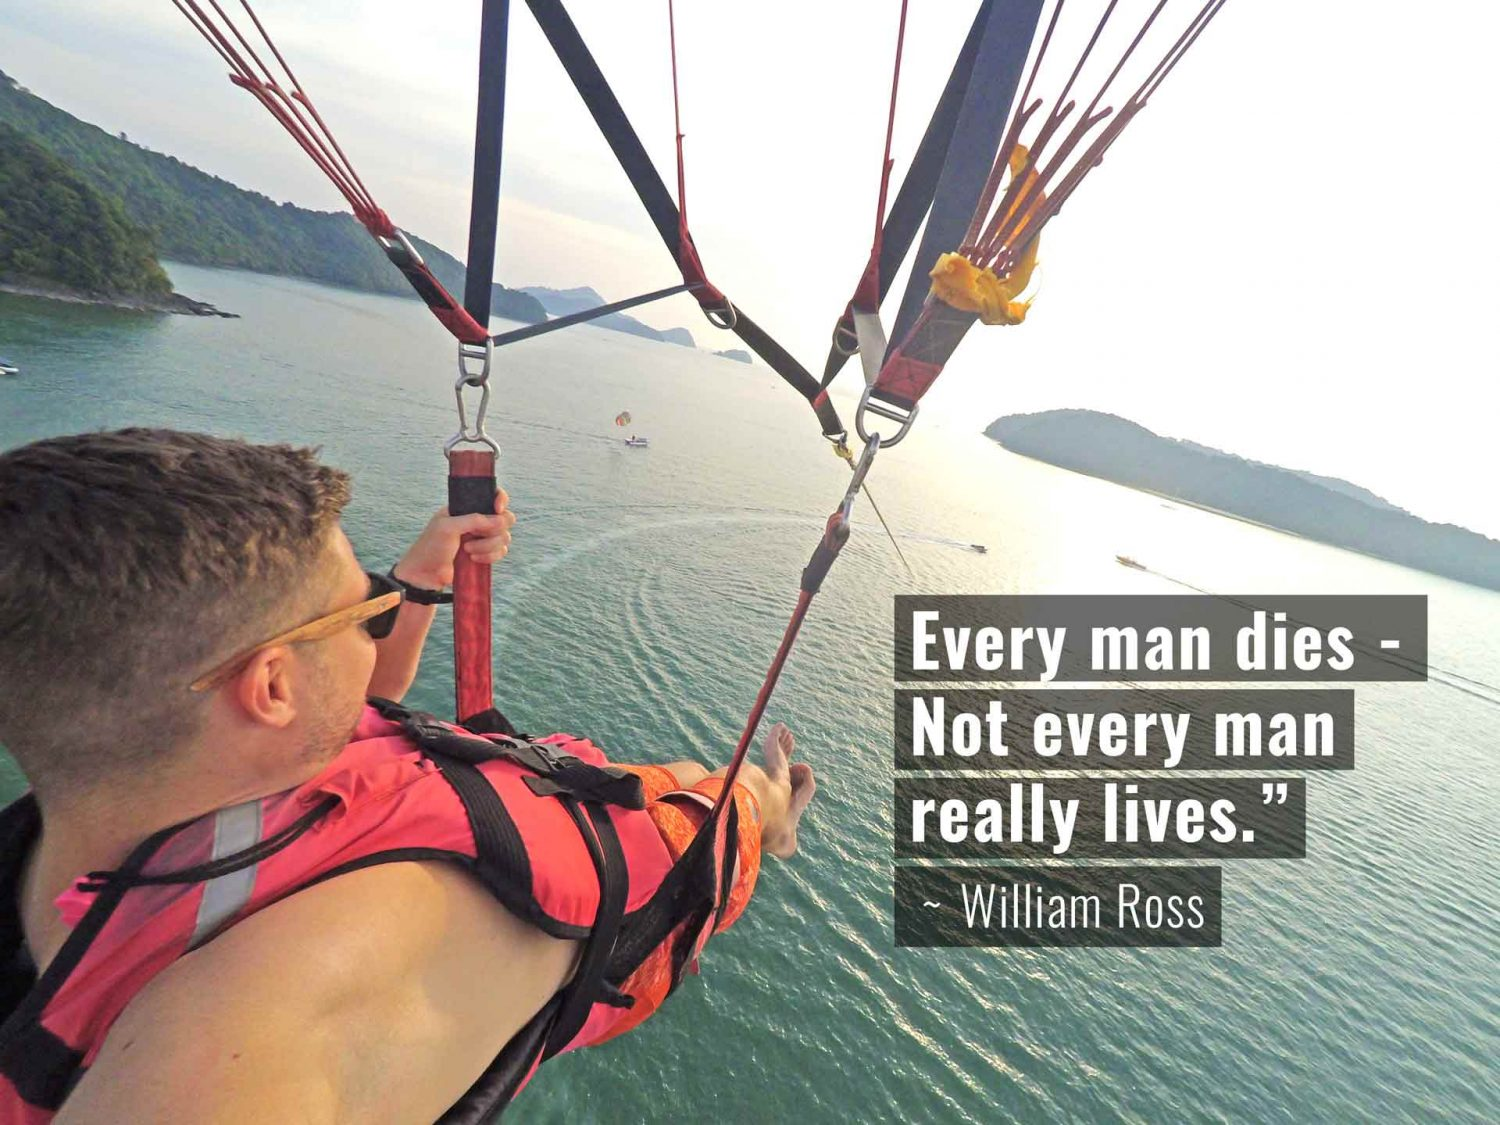 Every man dies - not every man really lives - William Ross - Paragliding in Langkawi